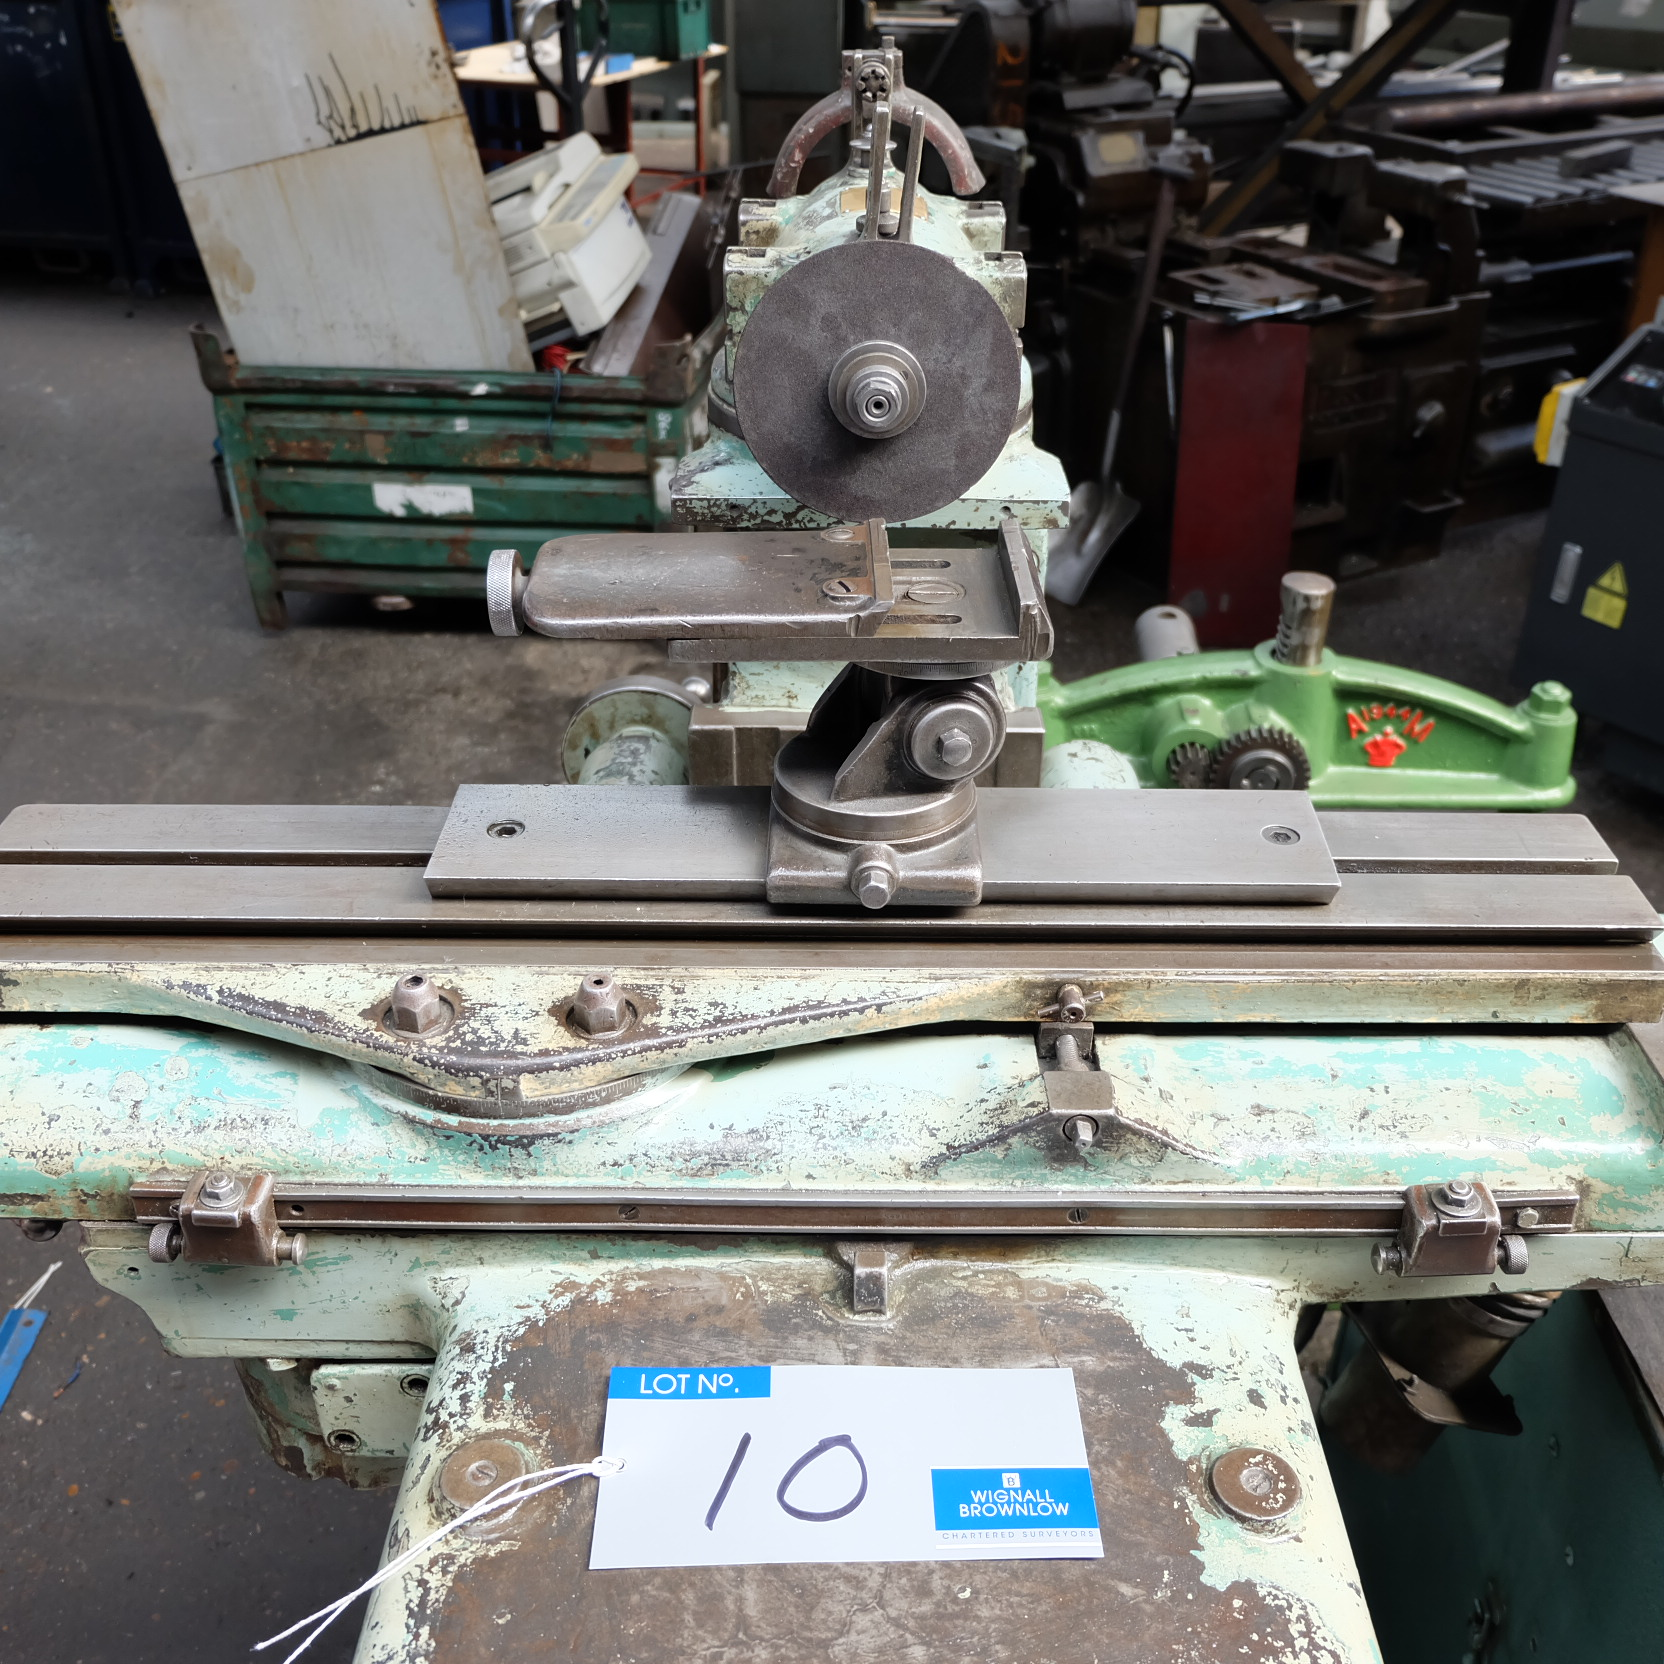 Lot 10 - An Alfred H Schutte WU3 Tool and Cutter Grinder with dust extraction unit.